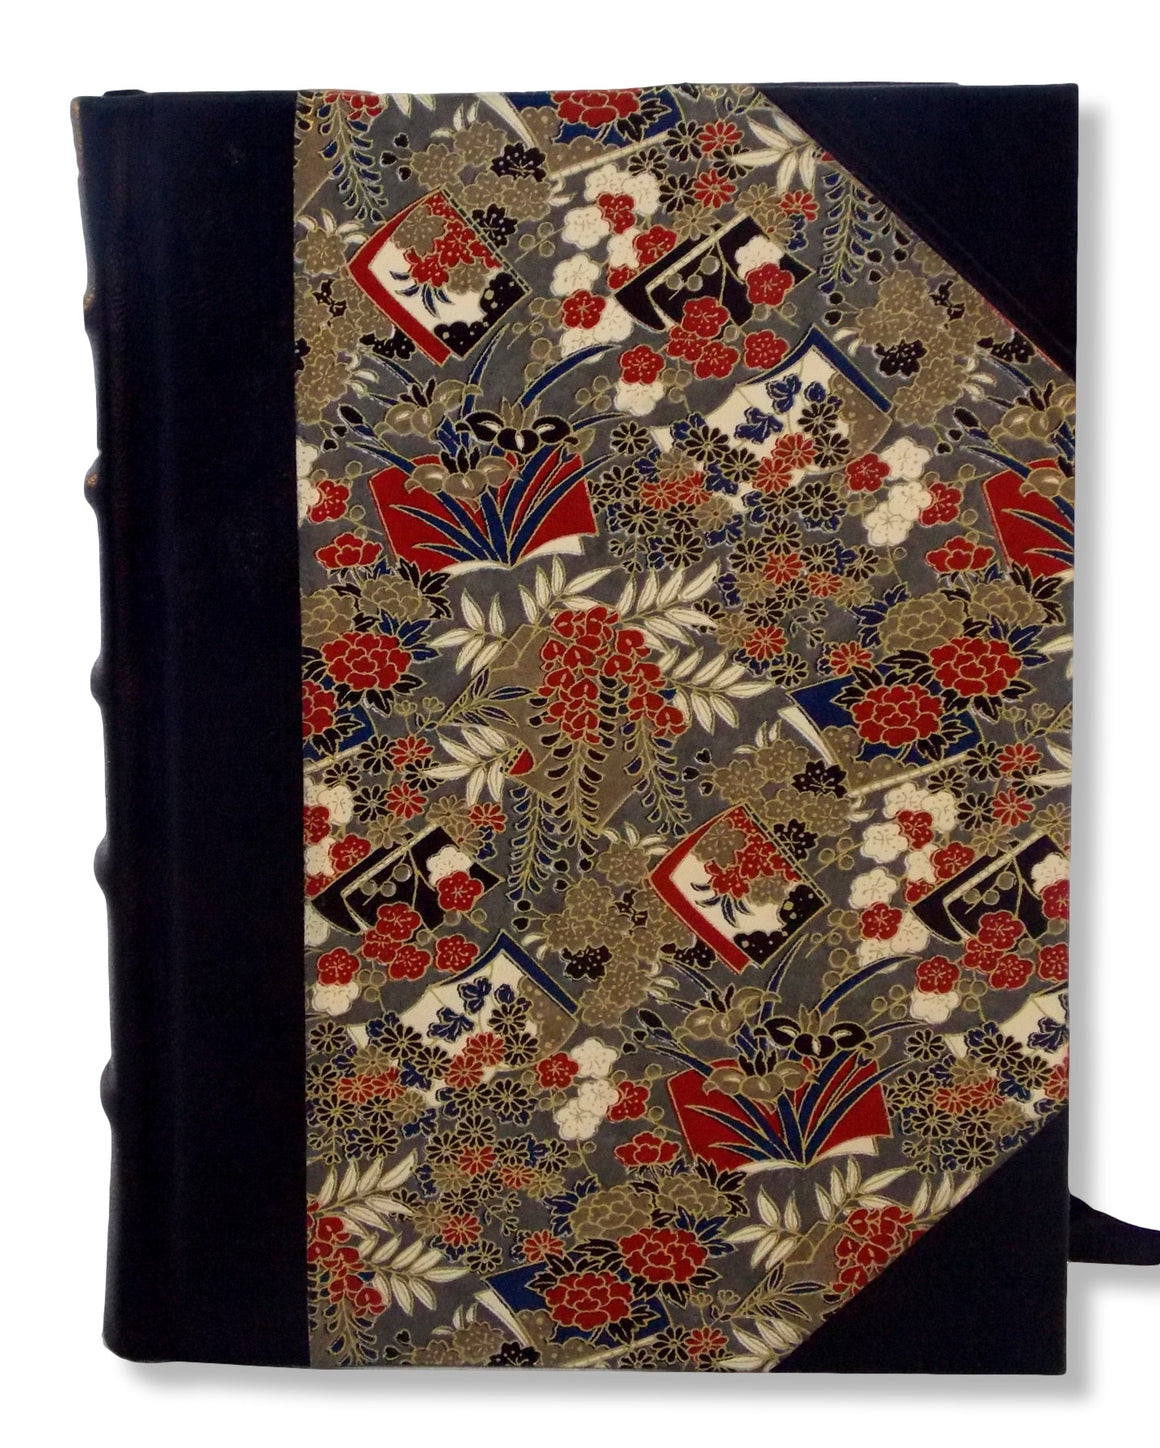 Black leather half journal featuring Japanese washi printed sides